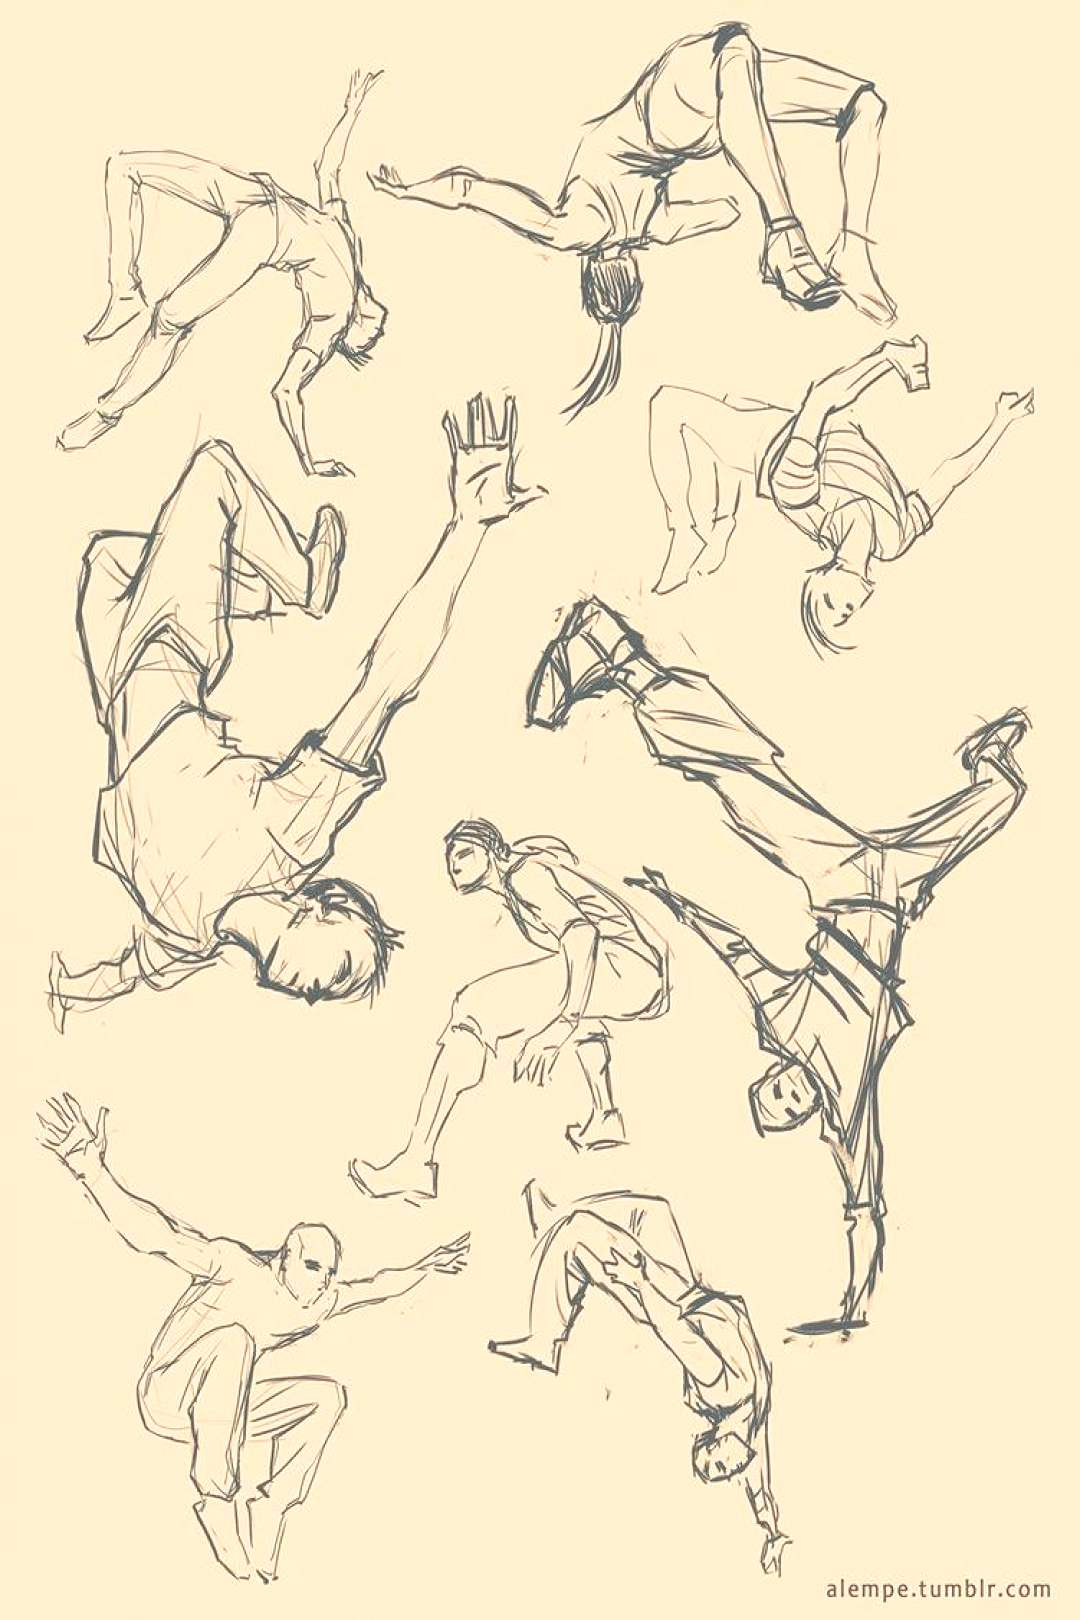 Action Poses by alempe